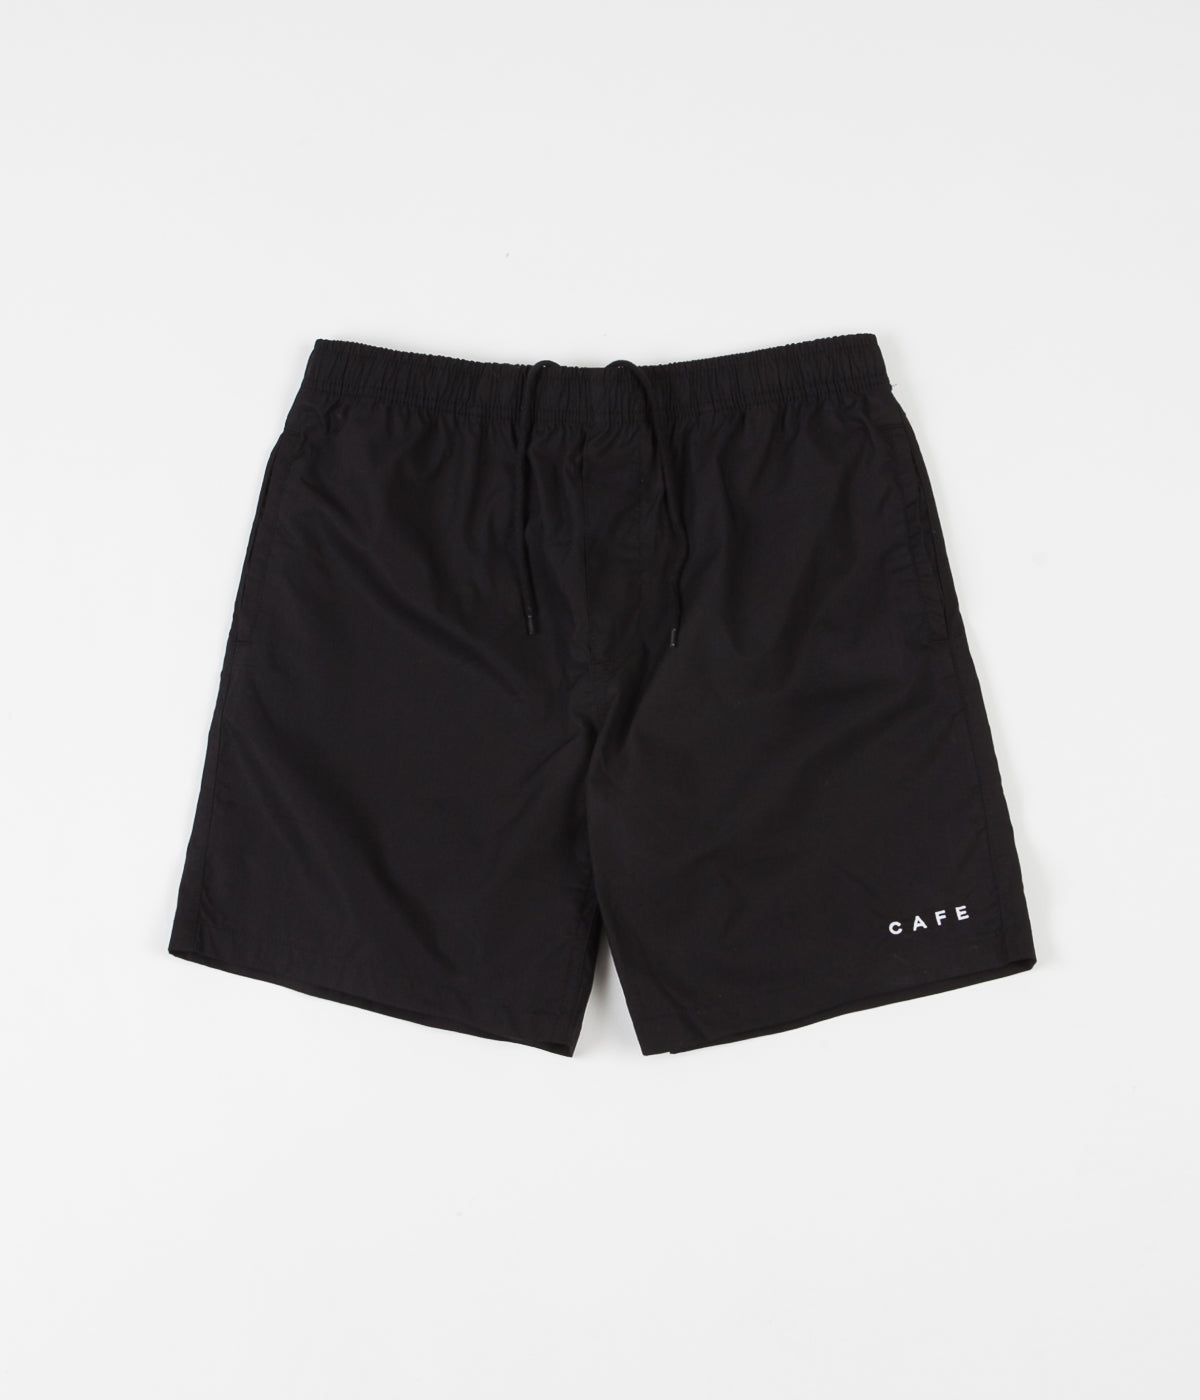 Skateboard Cafe Embroidered Shorts - Black